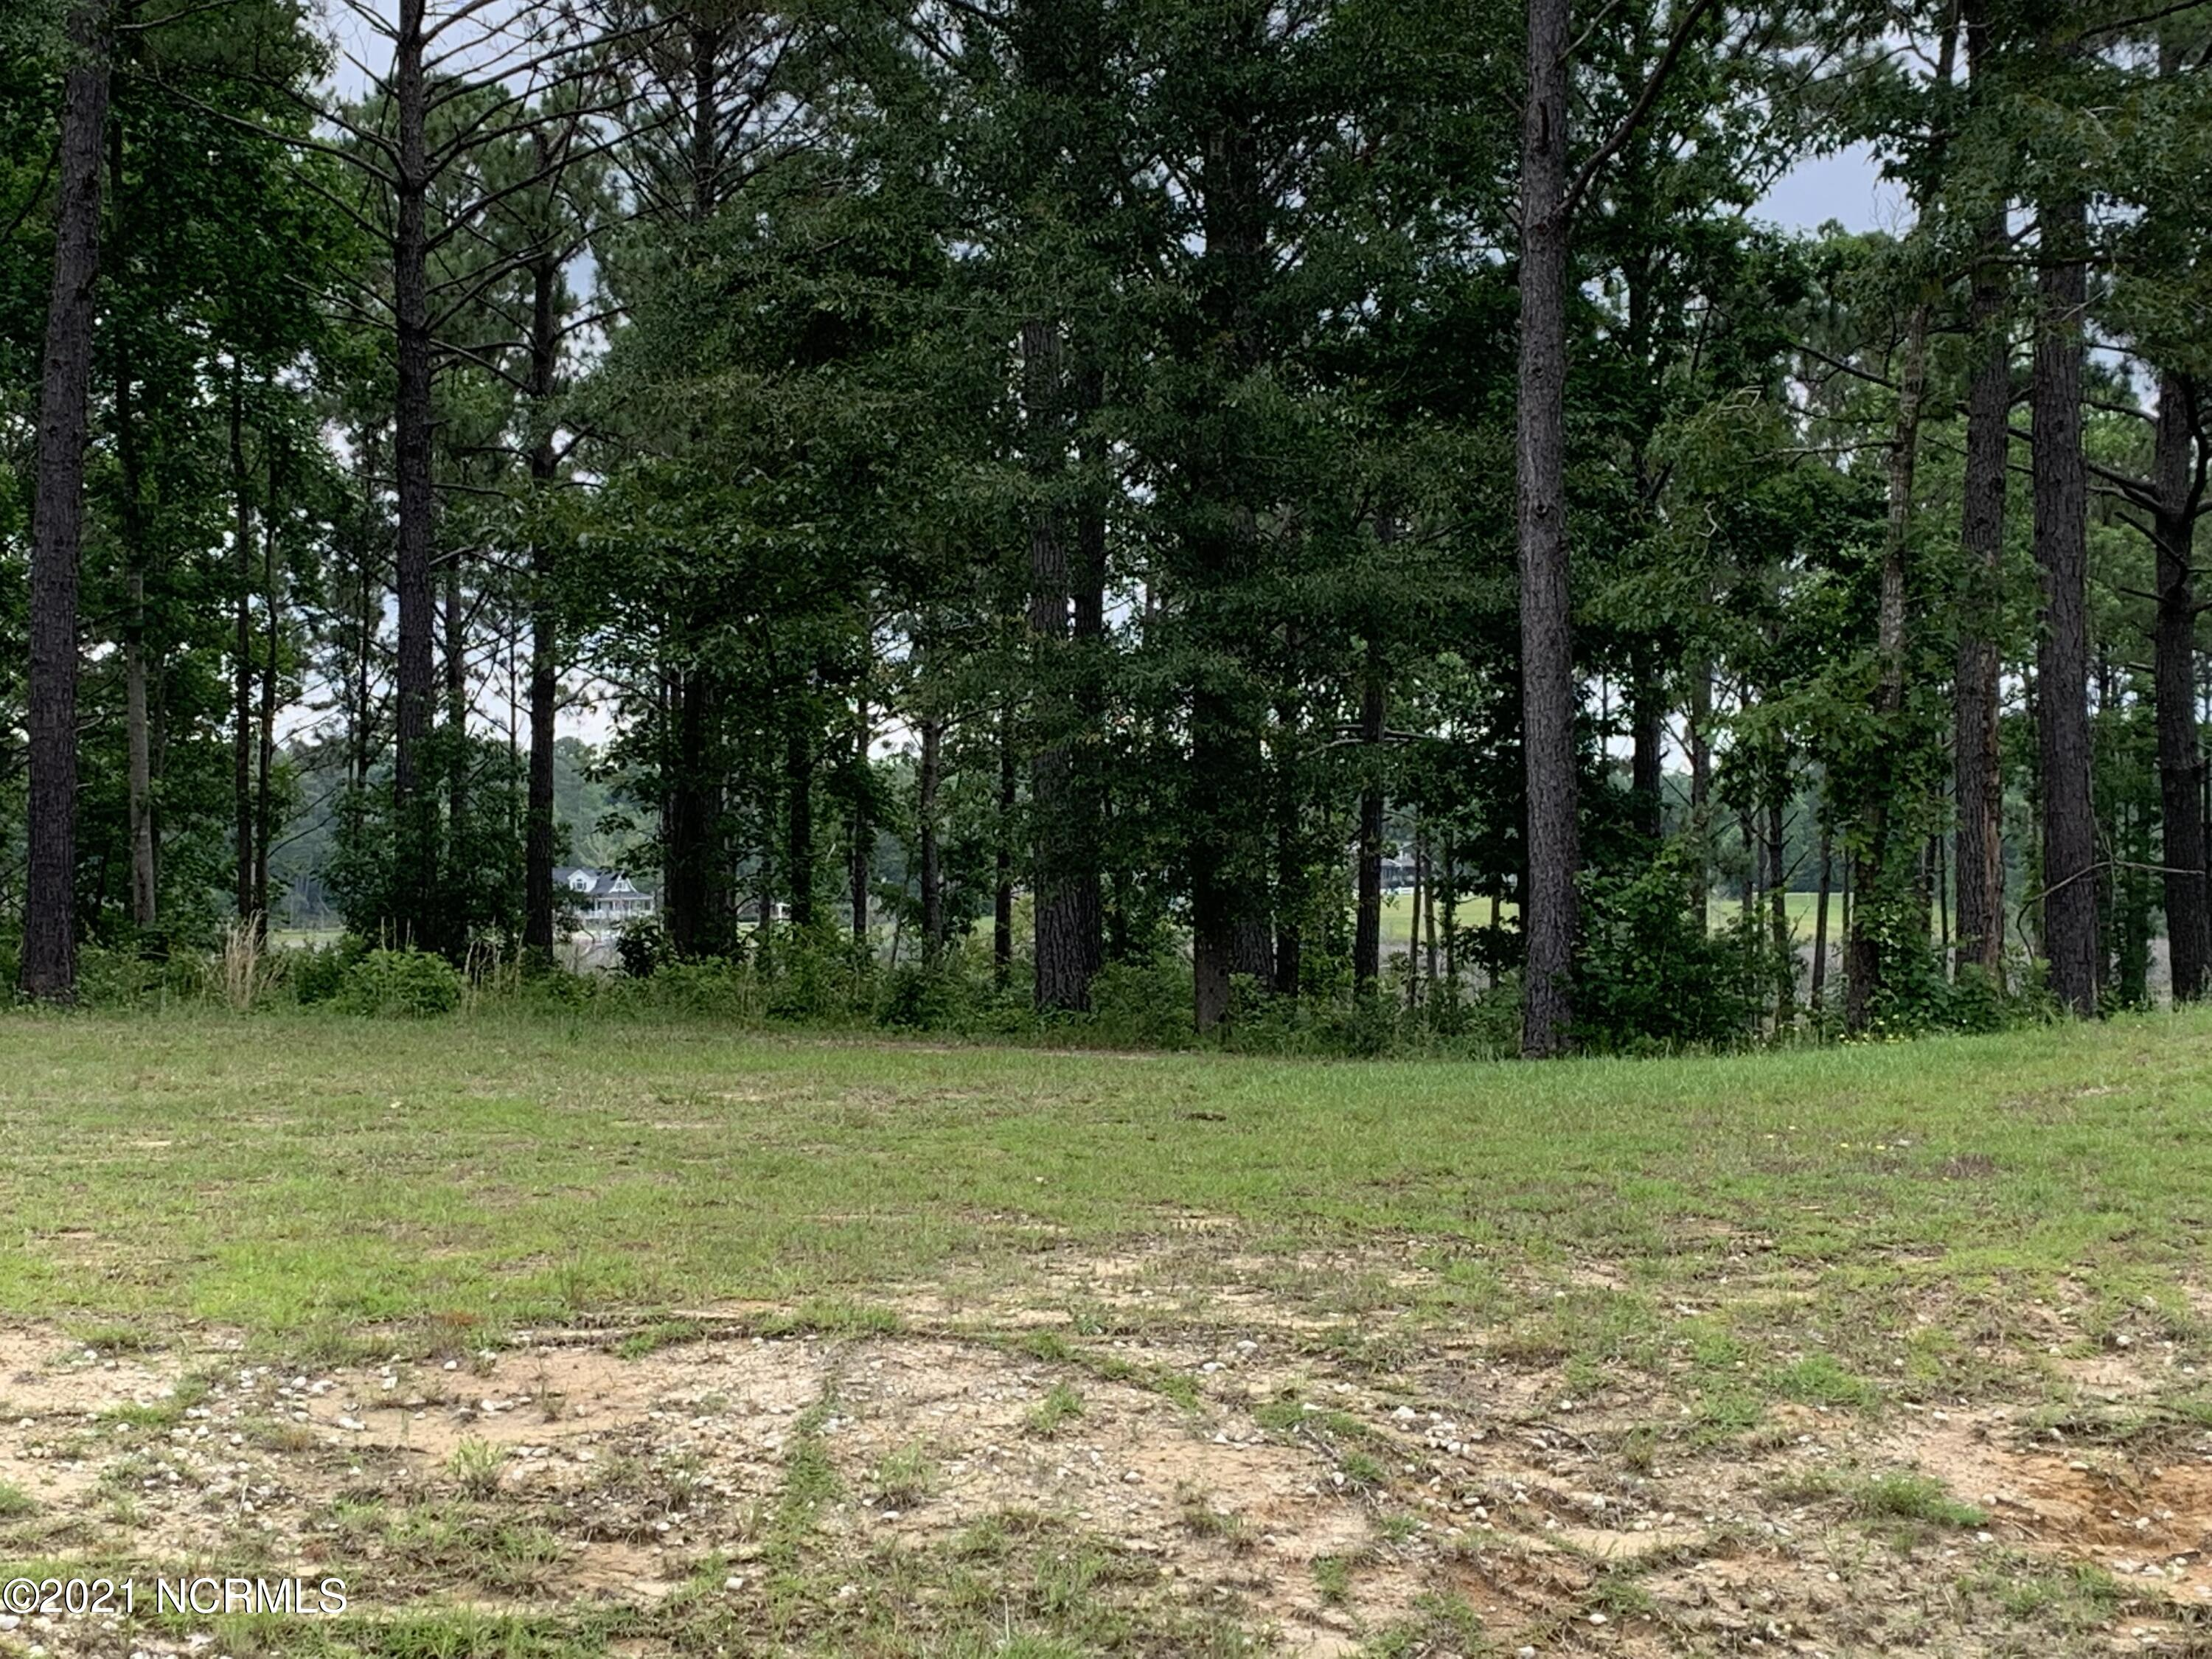 Check out this gorgeous 0.729 acre build-ready lot in the area's best kept secret waterfront community, Topsail Bluff at Loggerhead Bay. County water available. The topography of this lot should offer some nice marsh views of Turkey Creek, w/ a high bluff elevation over the water. Nature trails, golf cart paths, picnic area, boat ramp & other great places to enjoy the outdoors in Topsail Bluff subdivision. Just a quick drive to Topsail Island beaches, this lot is the one you've been looking for!